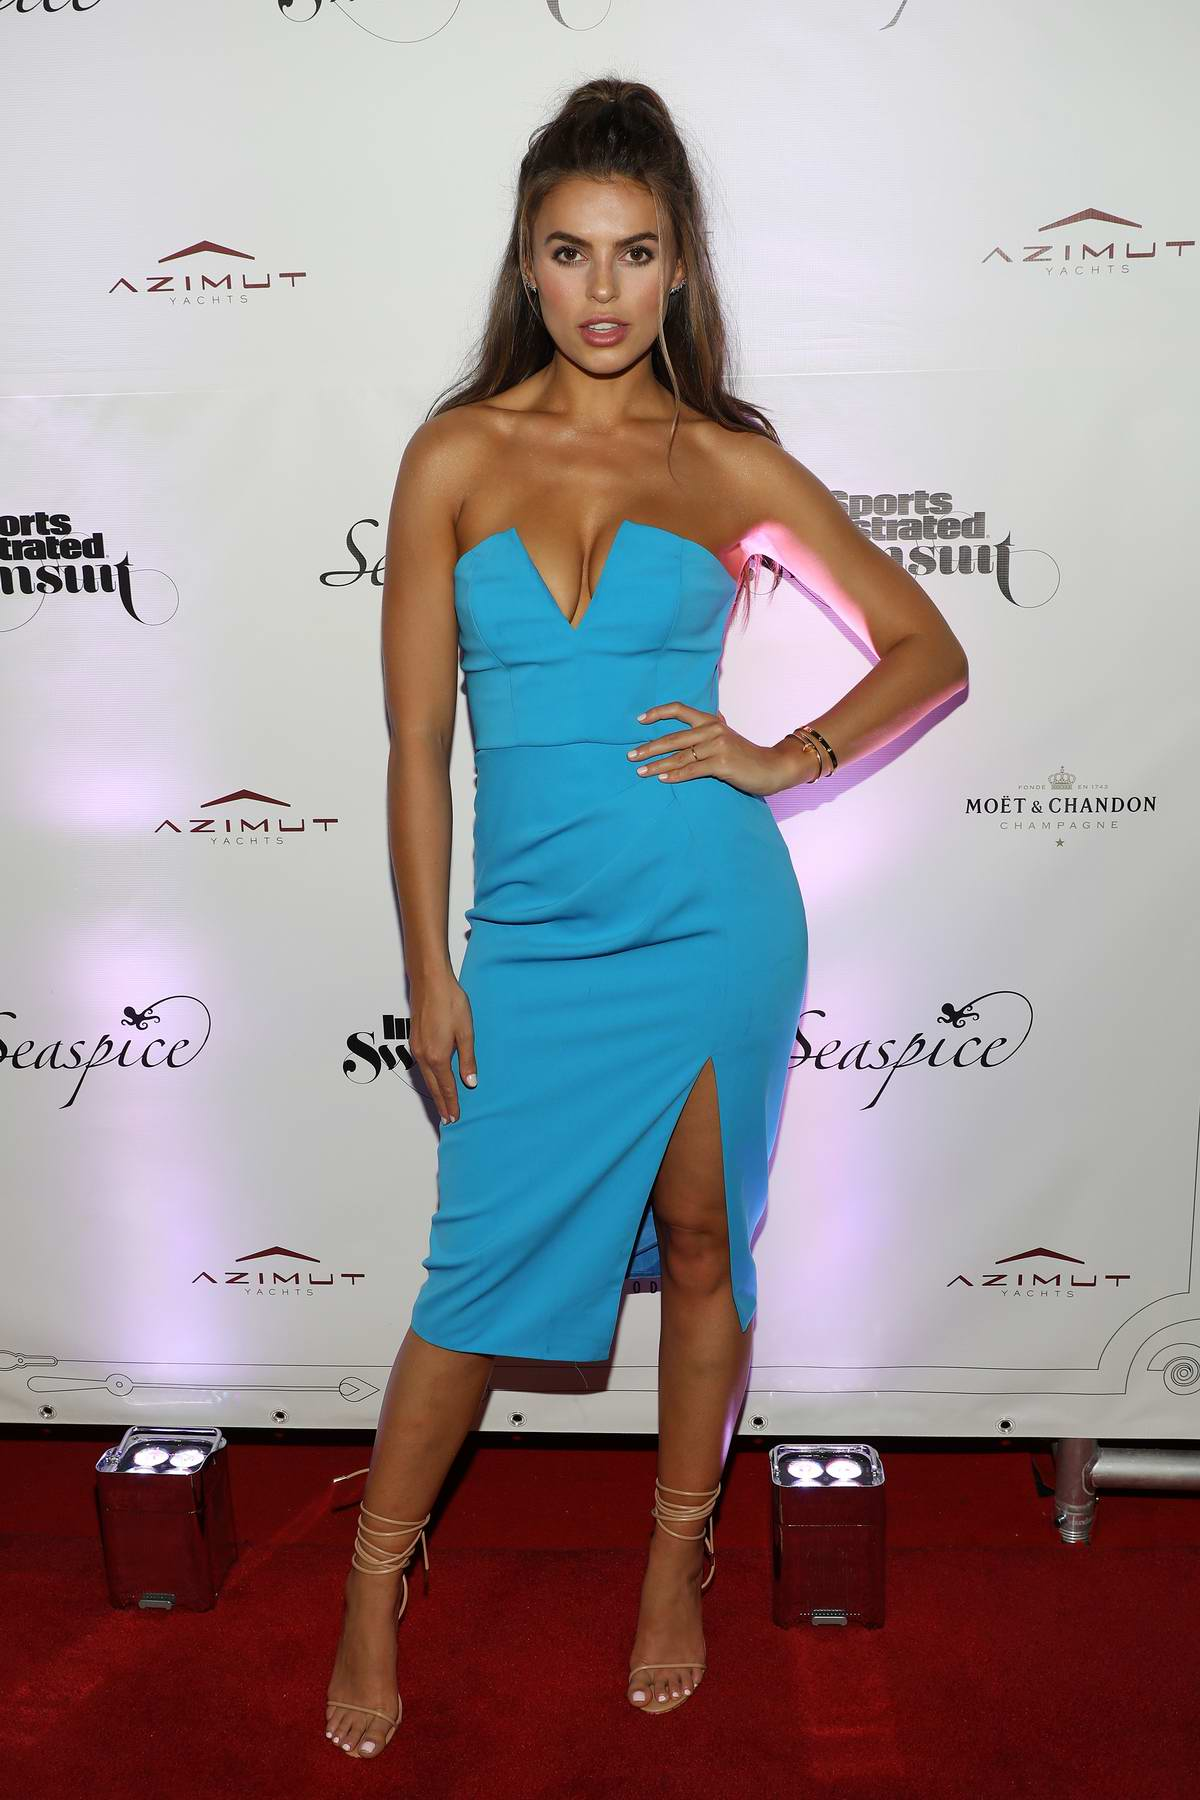 Brooks Nader attends Sports Illustrated Swimsuit 2019 Issue Launch at Seaspice in Miami, Florida